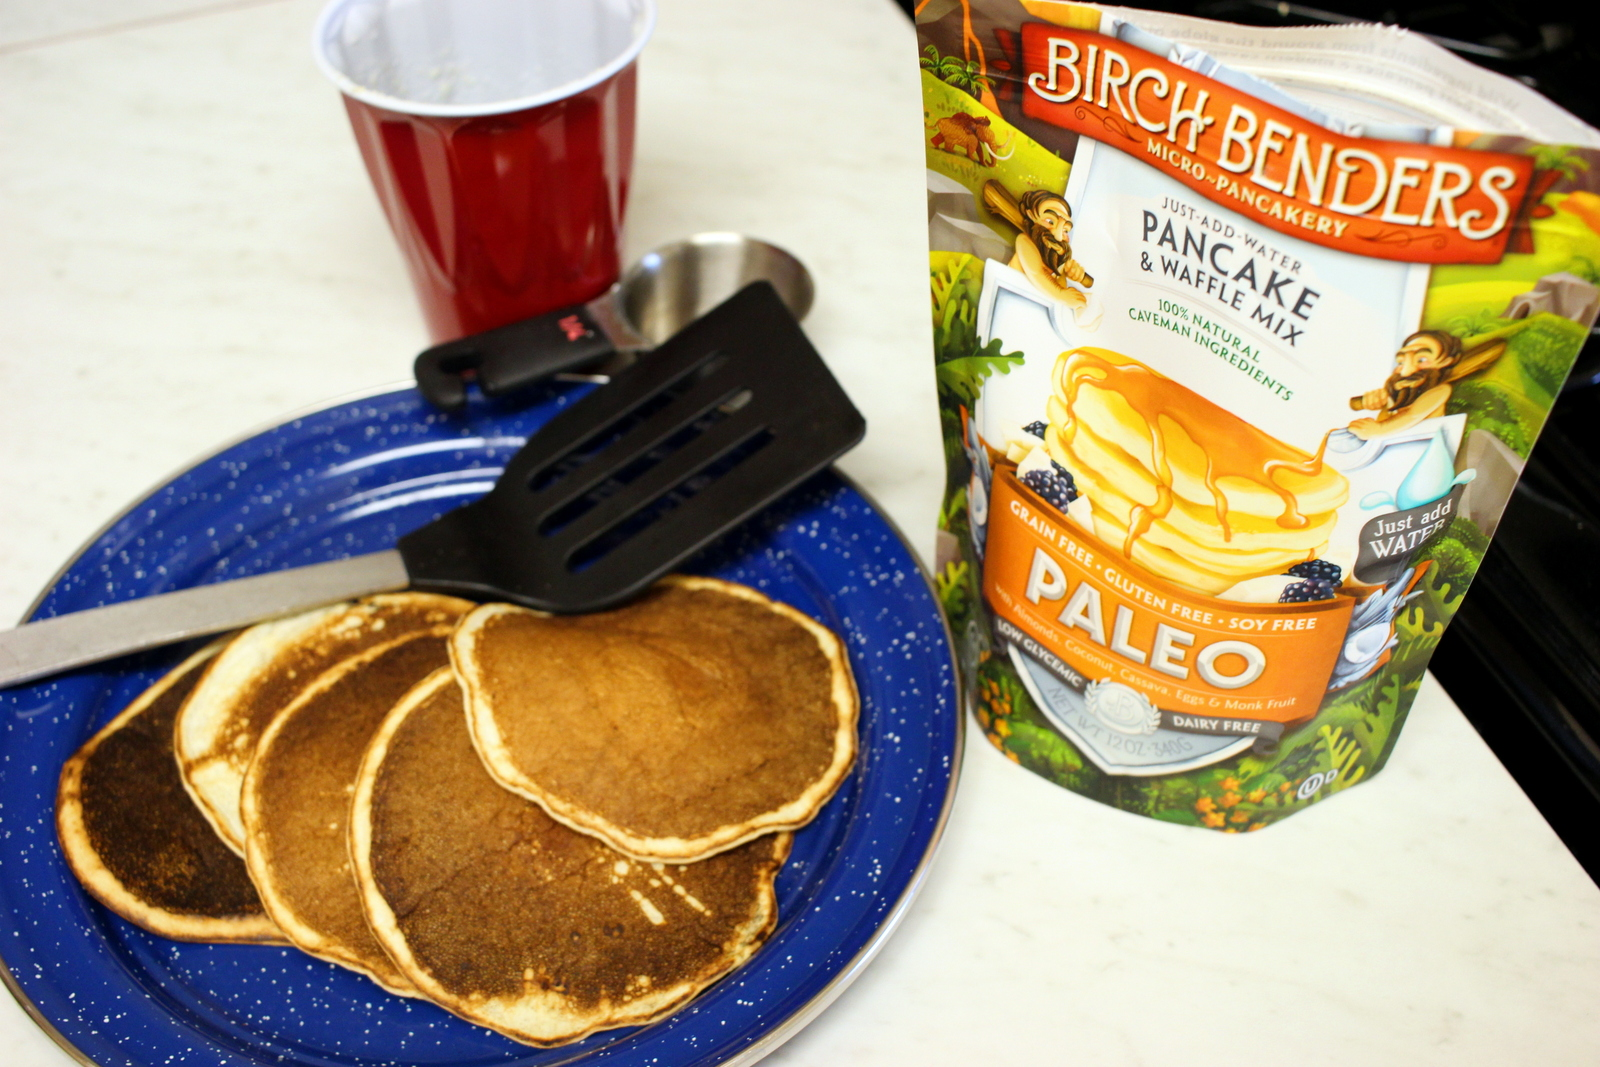 All the tools one needs to make these pancakes (measuring cup optional).